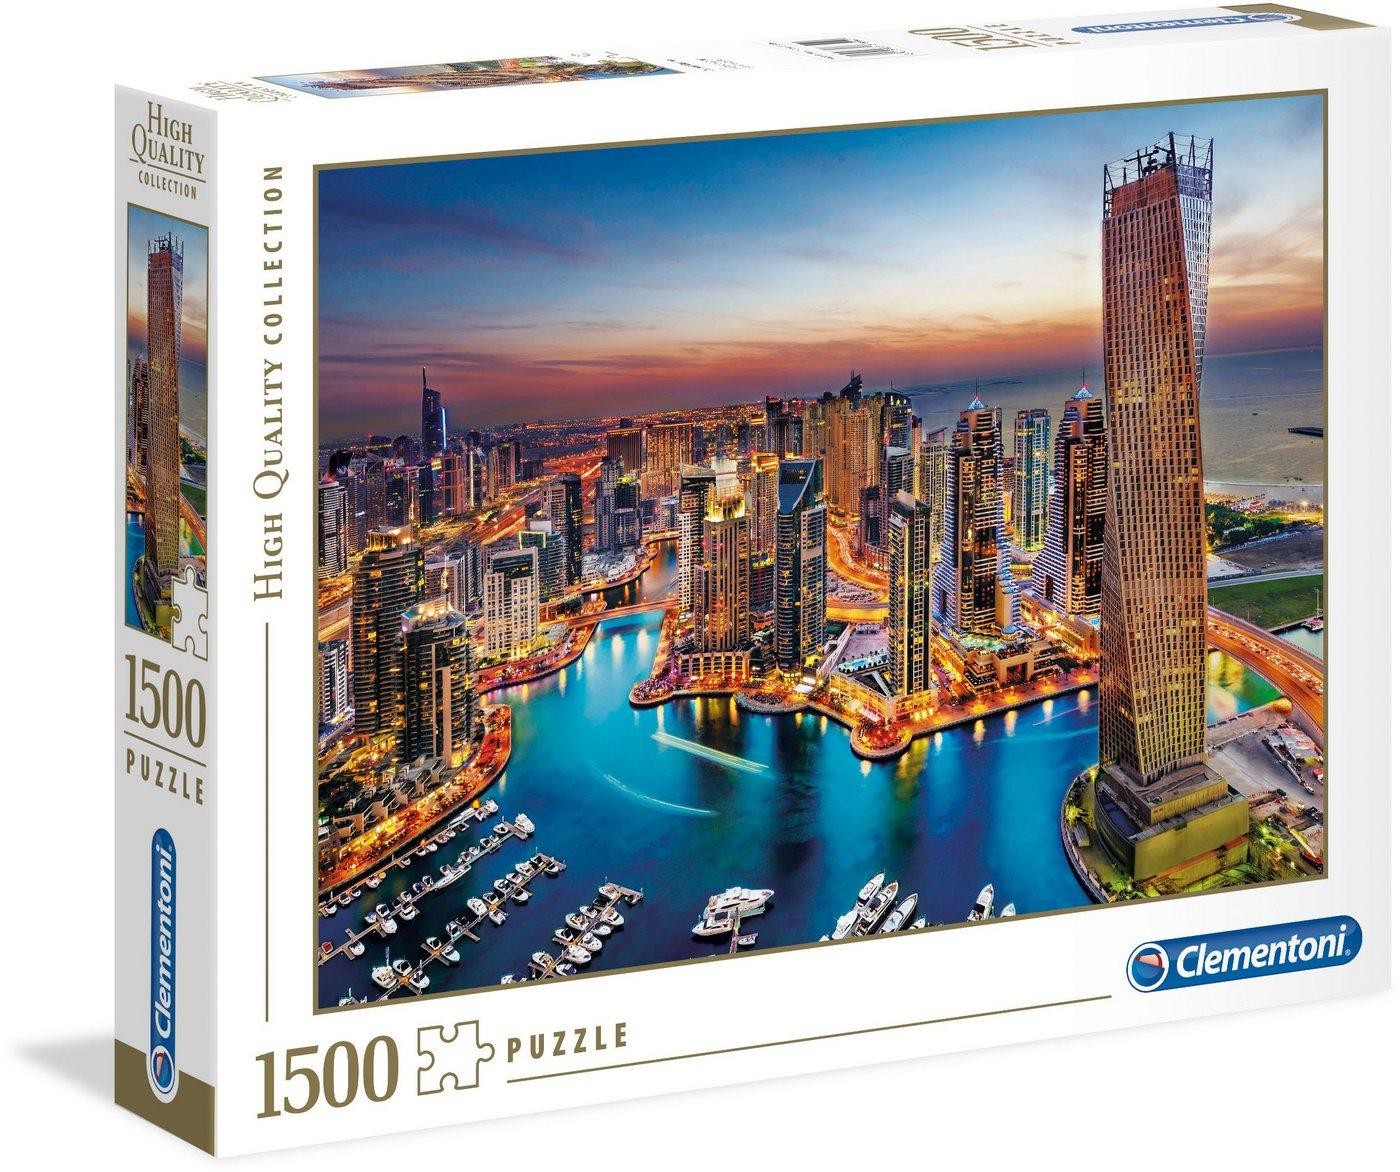 Clementoni® Puzzle »High Quality Collection - Yachthafen von Dubai«, 1500 Puzzleteile, Made in Europe